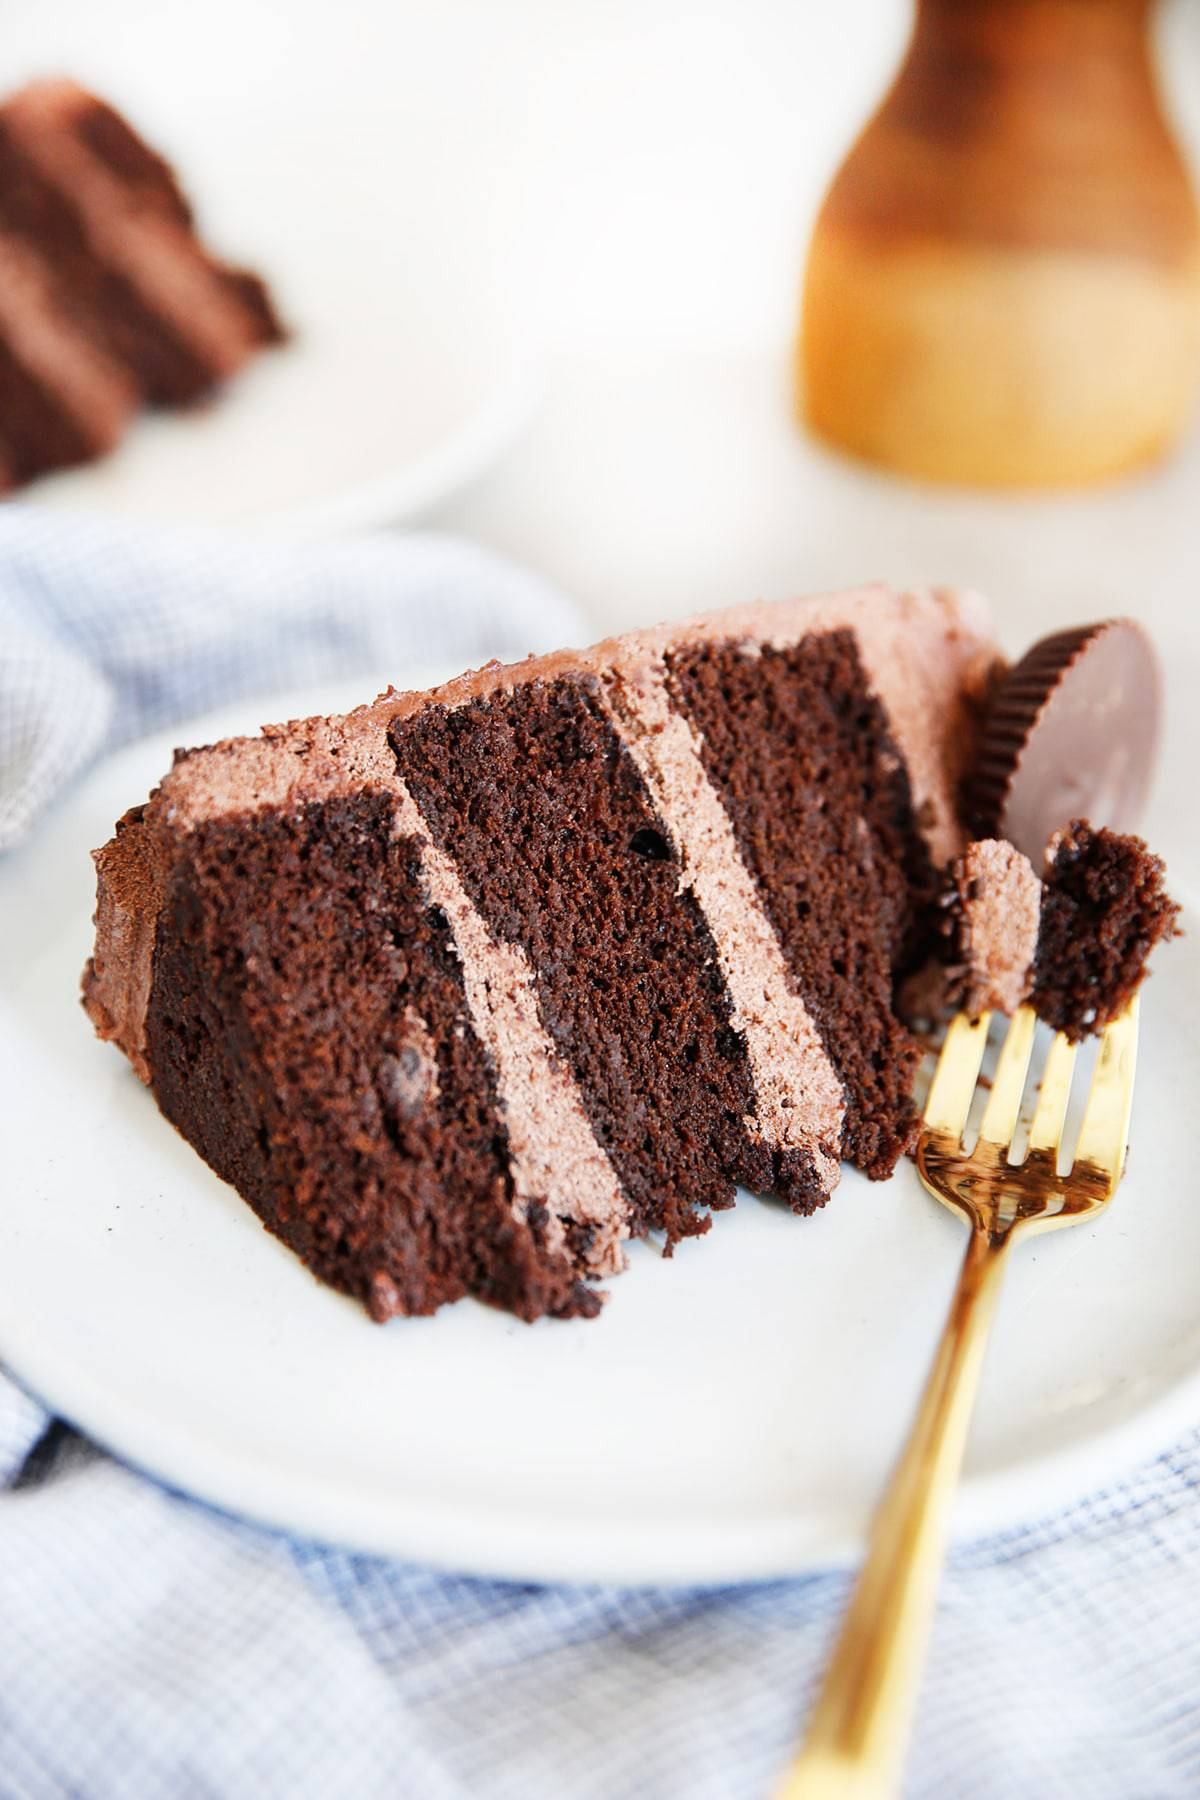 A three layer chocolate cake on a plate.